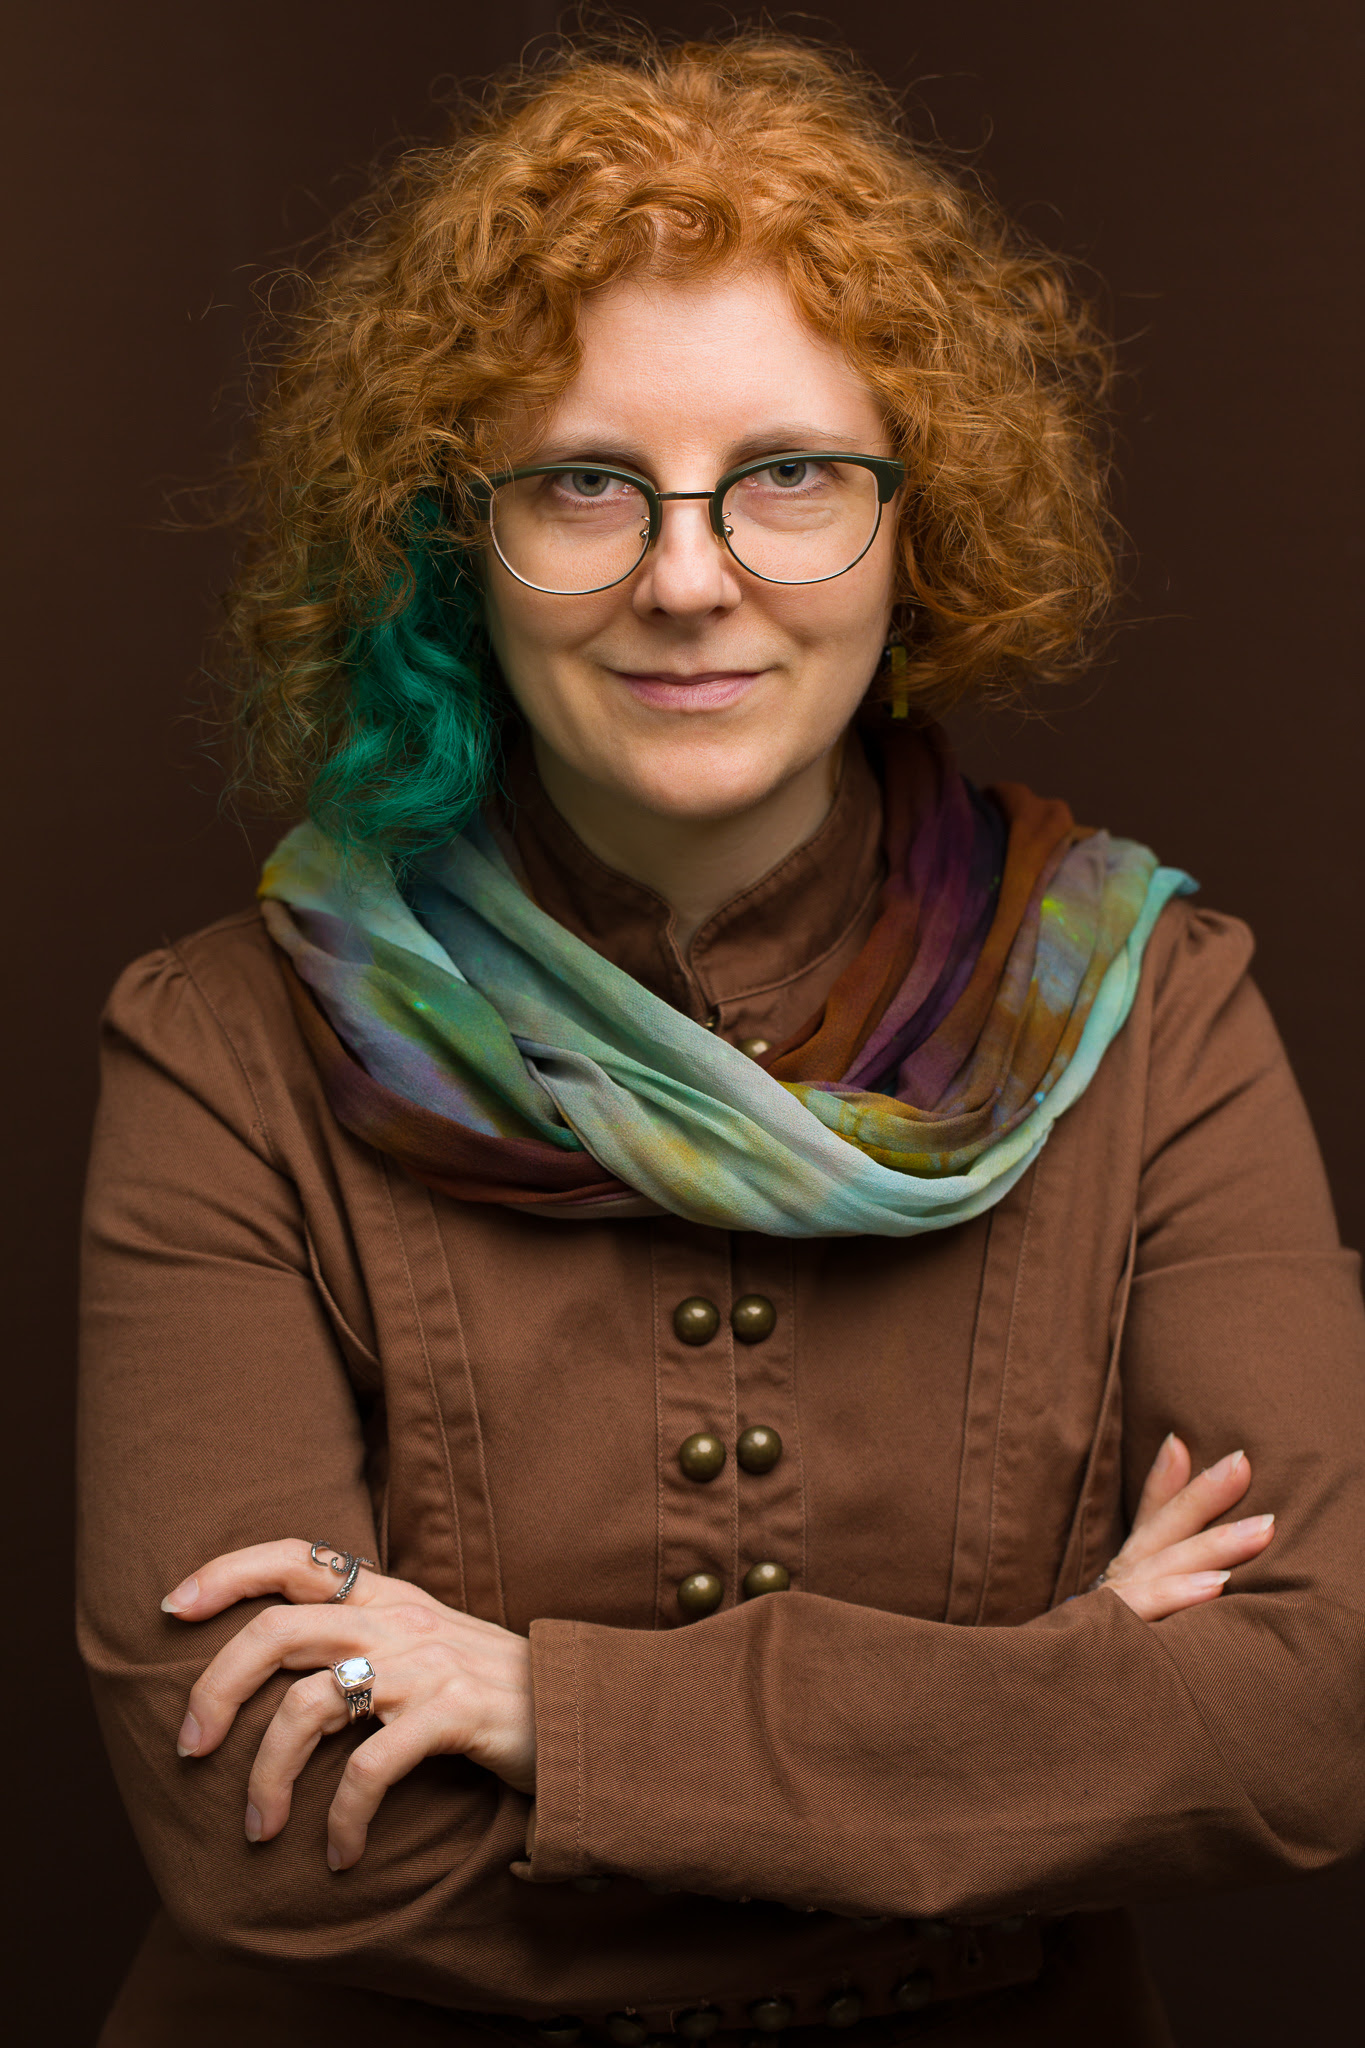 Photo of Dora Raymaker, a white person with red curly hair with one section dyed green. They are wearing a brown jacket and a green and brown scarf in front of a brown background.